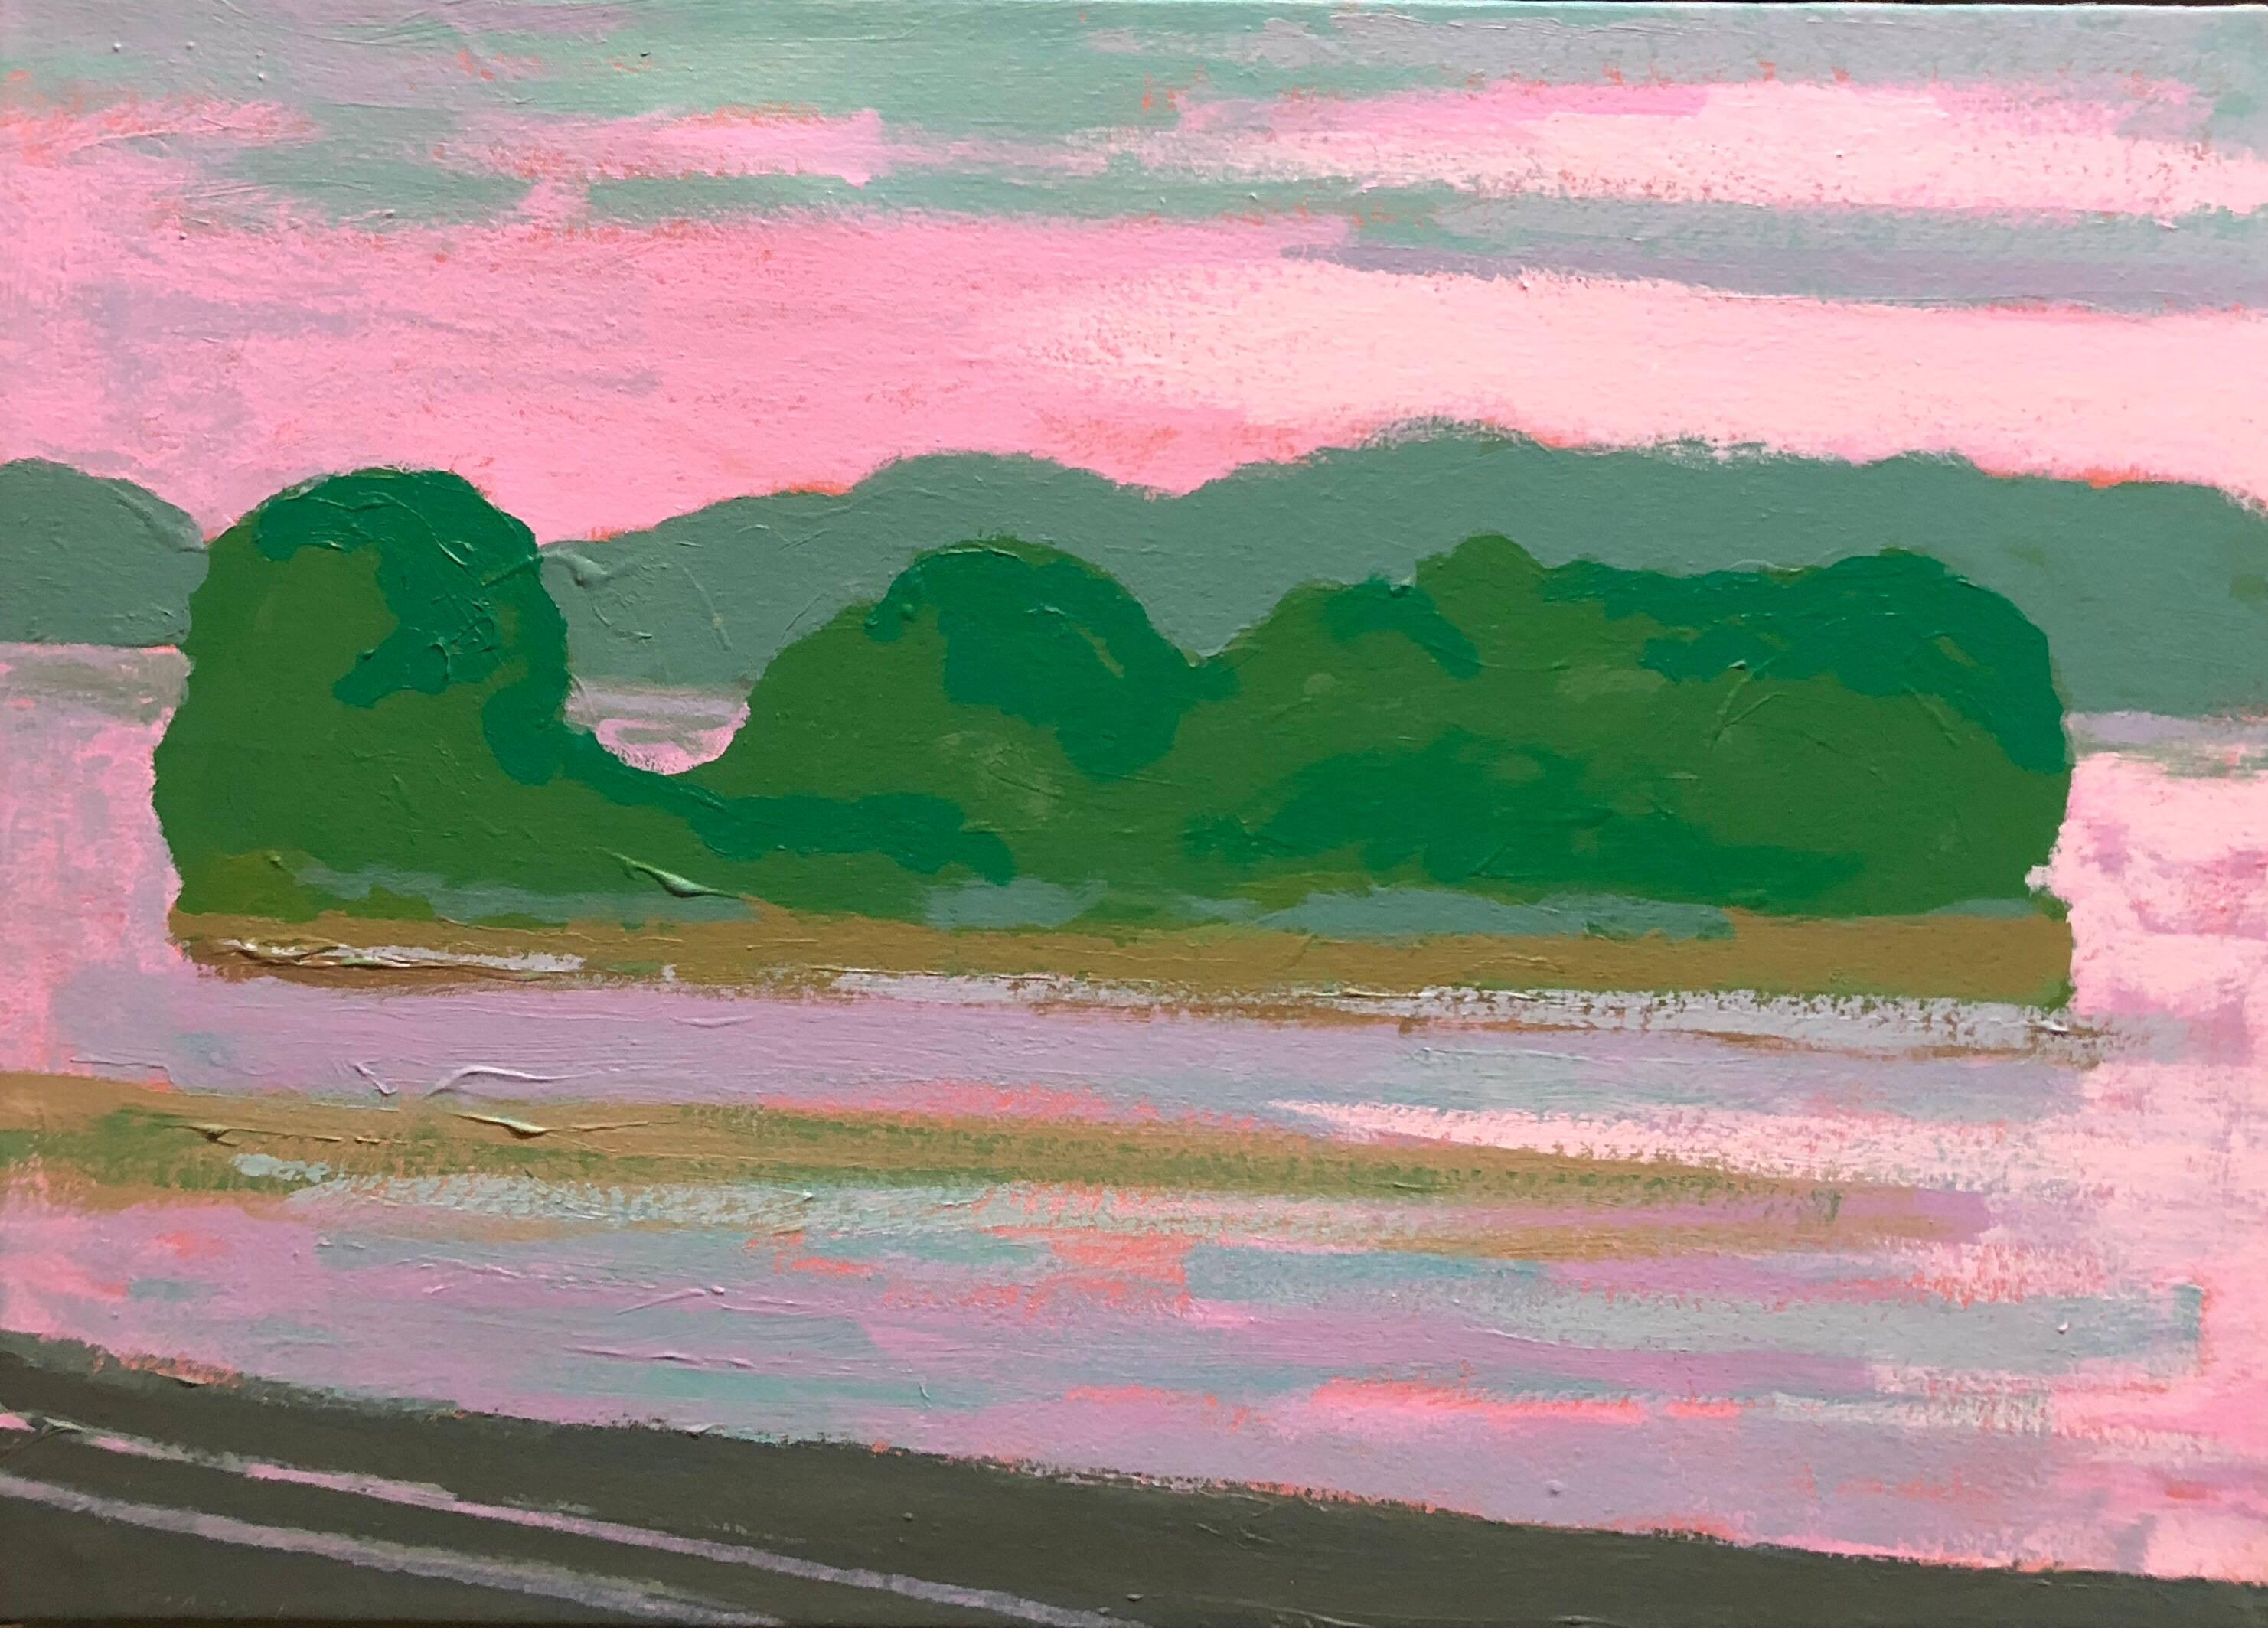 Hudson River Flats, Abstract Expressionist Landscape Oil Painting